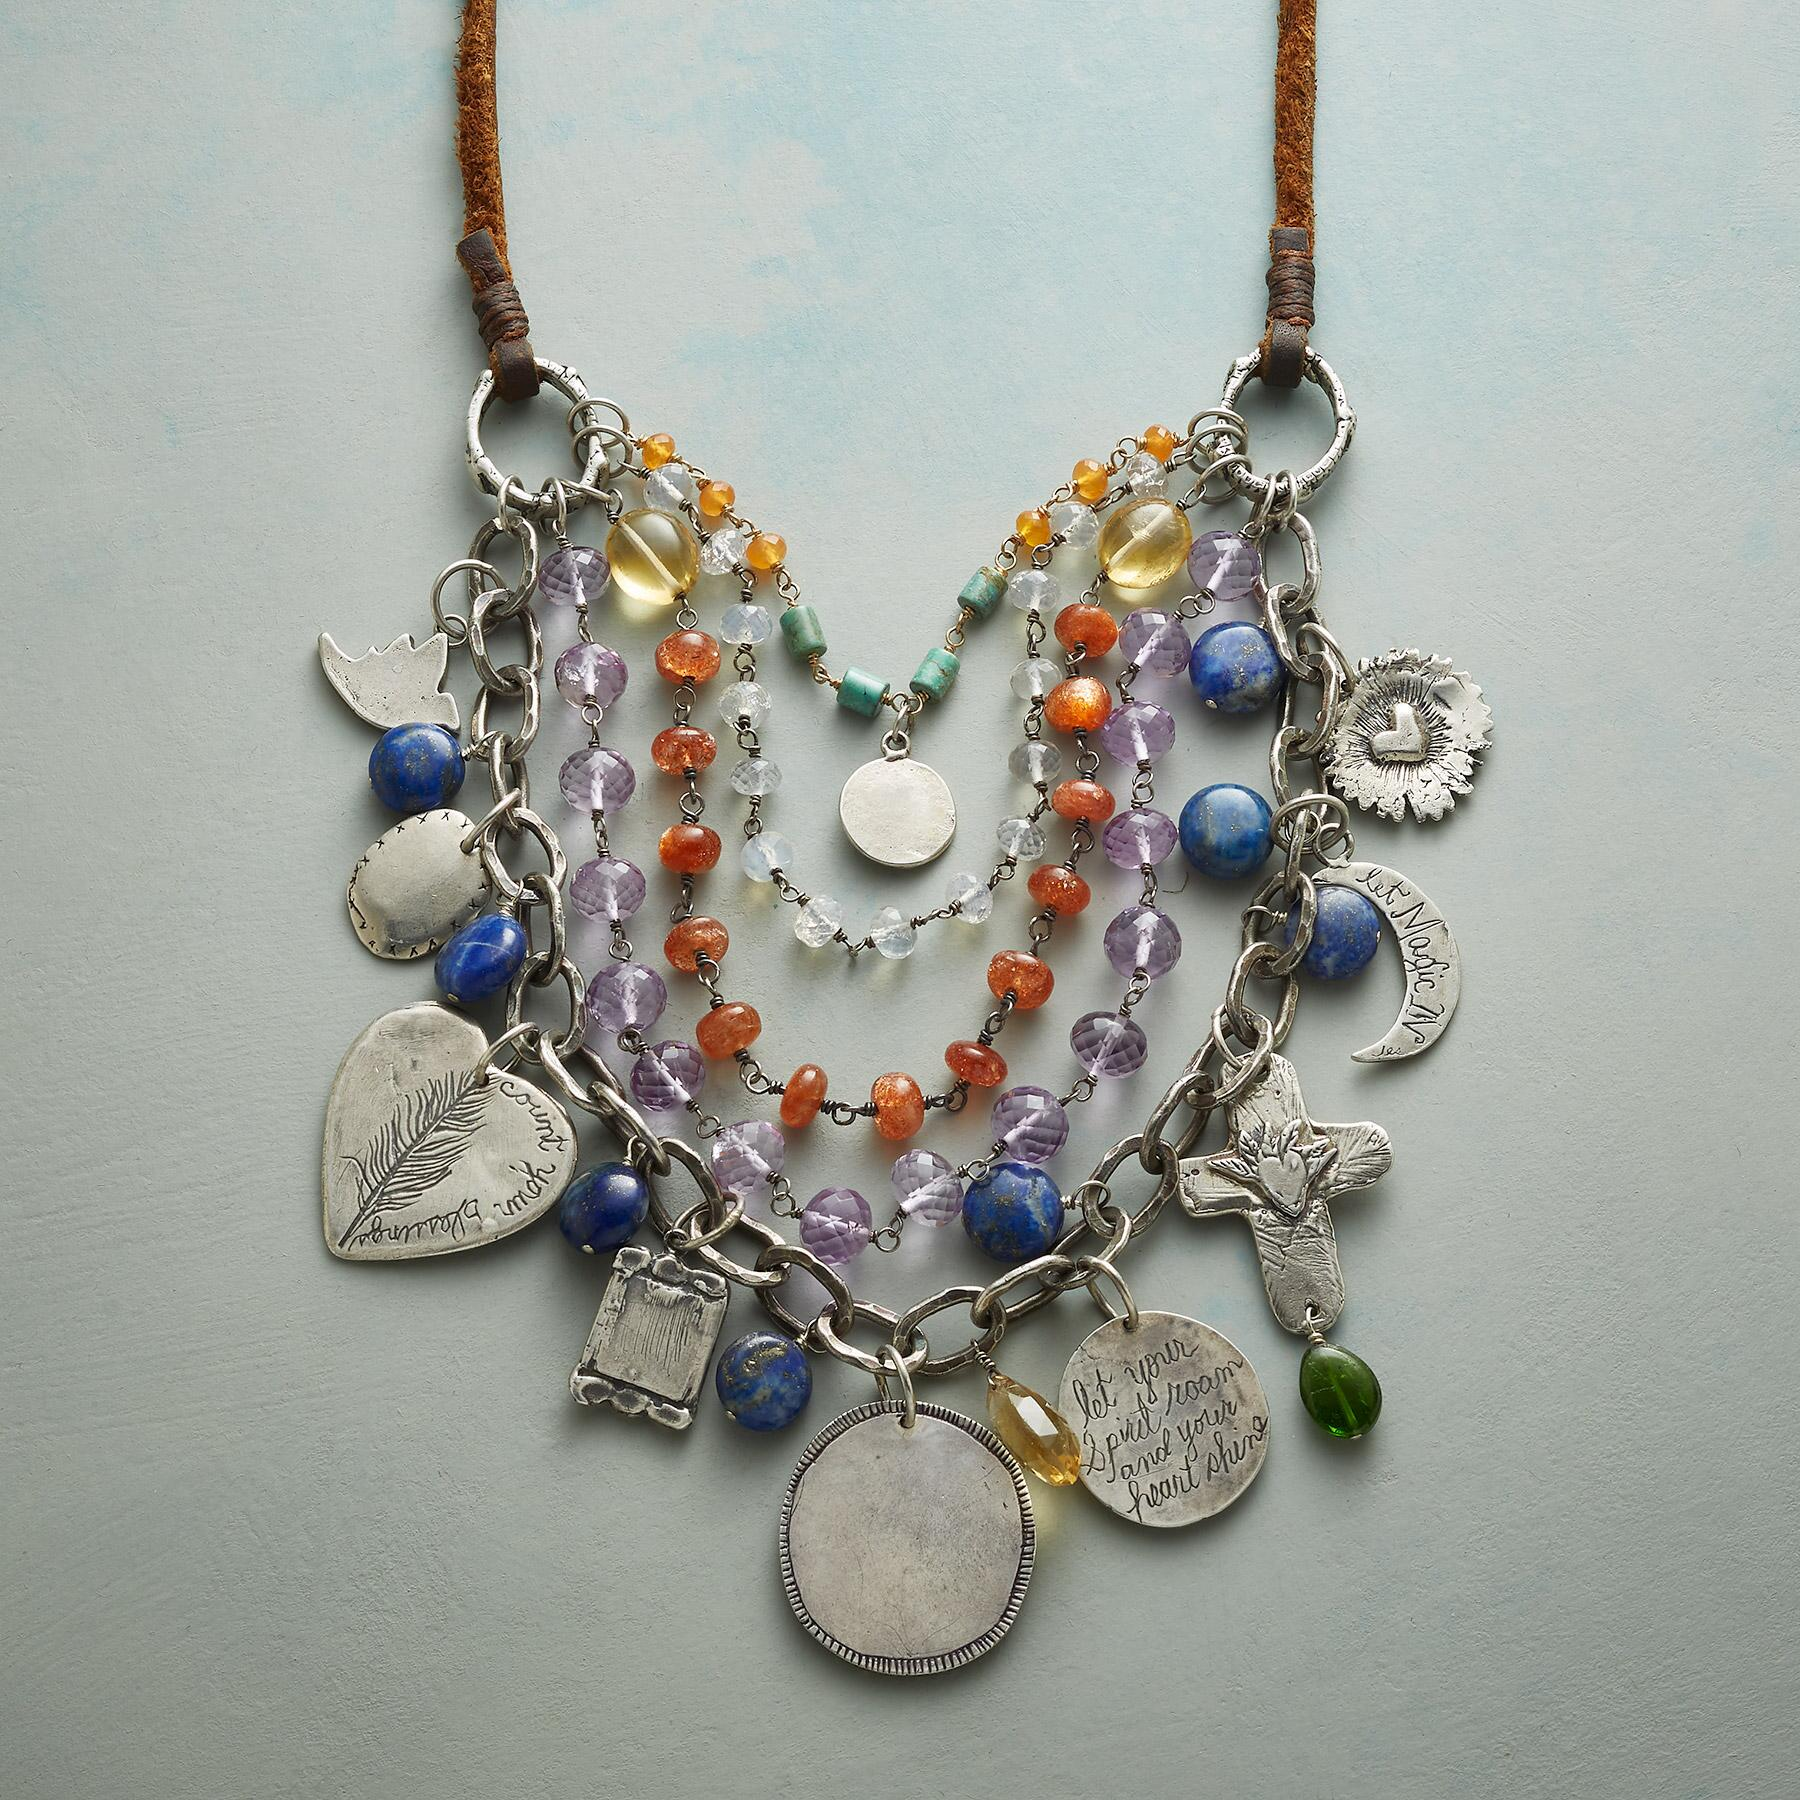 NEW DAY NECKLACE: View 3